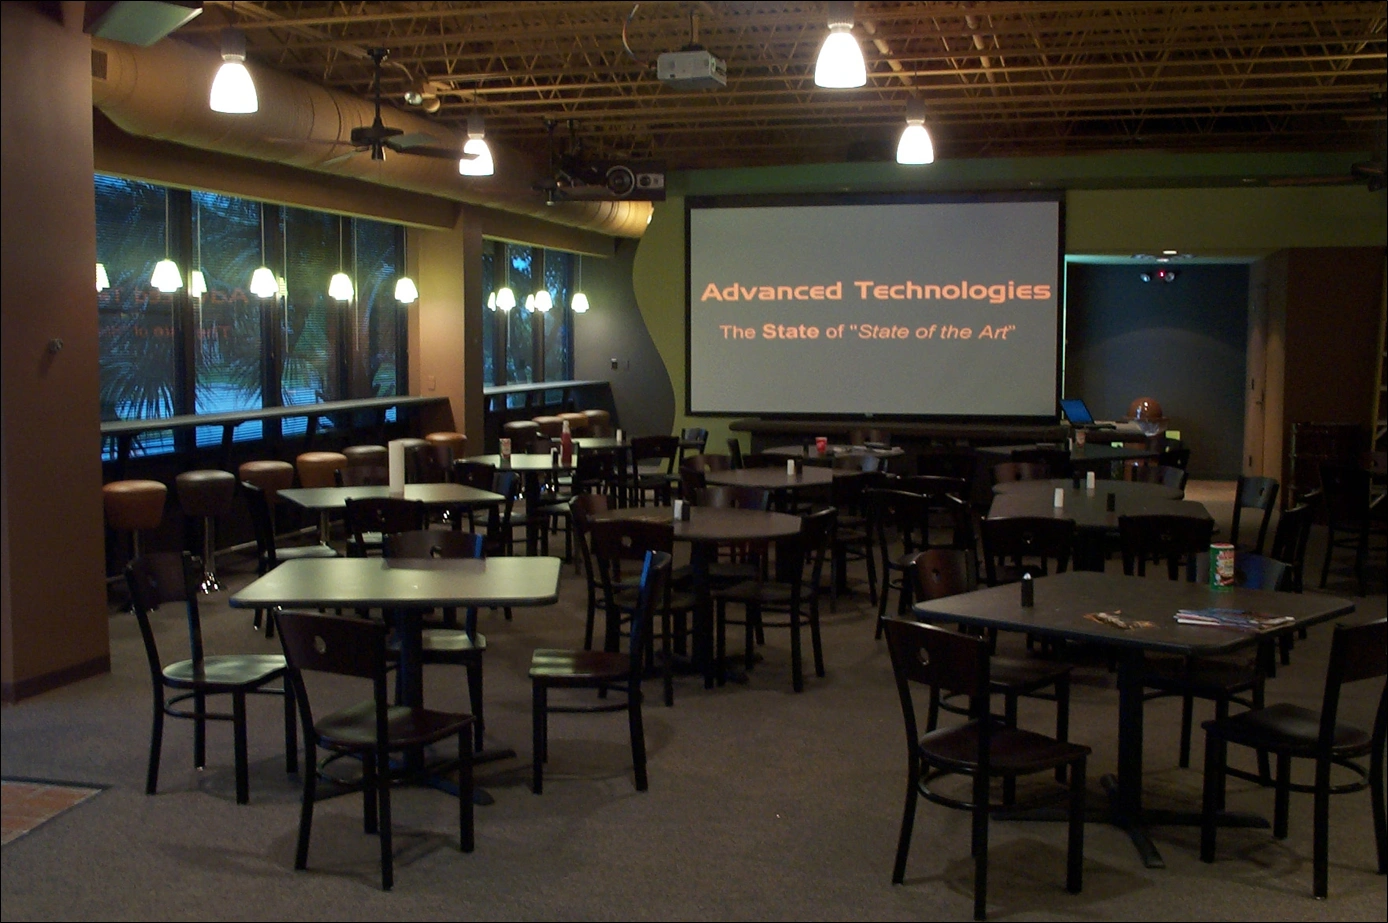 The best integrator in baton rouge  Conference rooms, video walls, projection systems, media rooms,